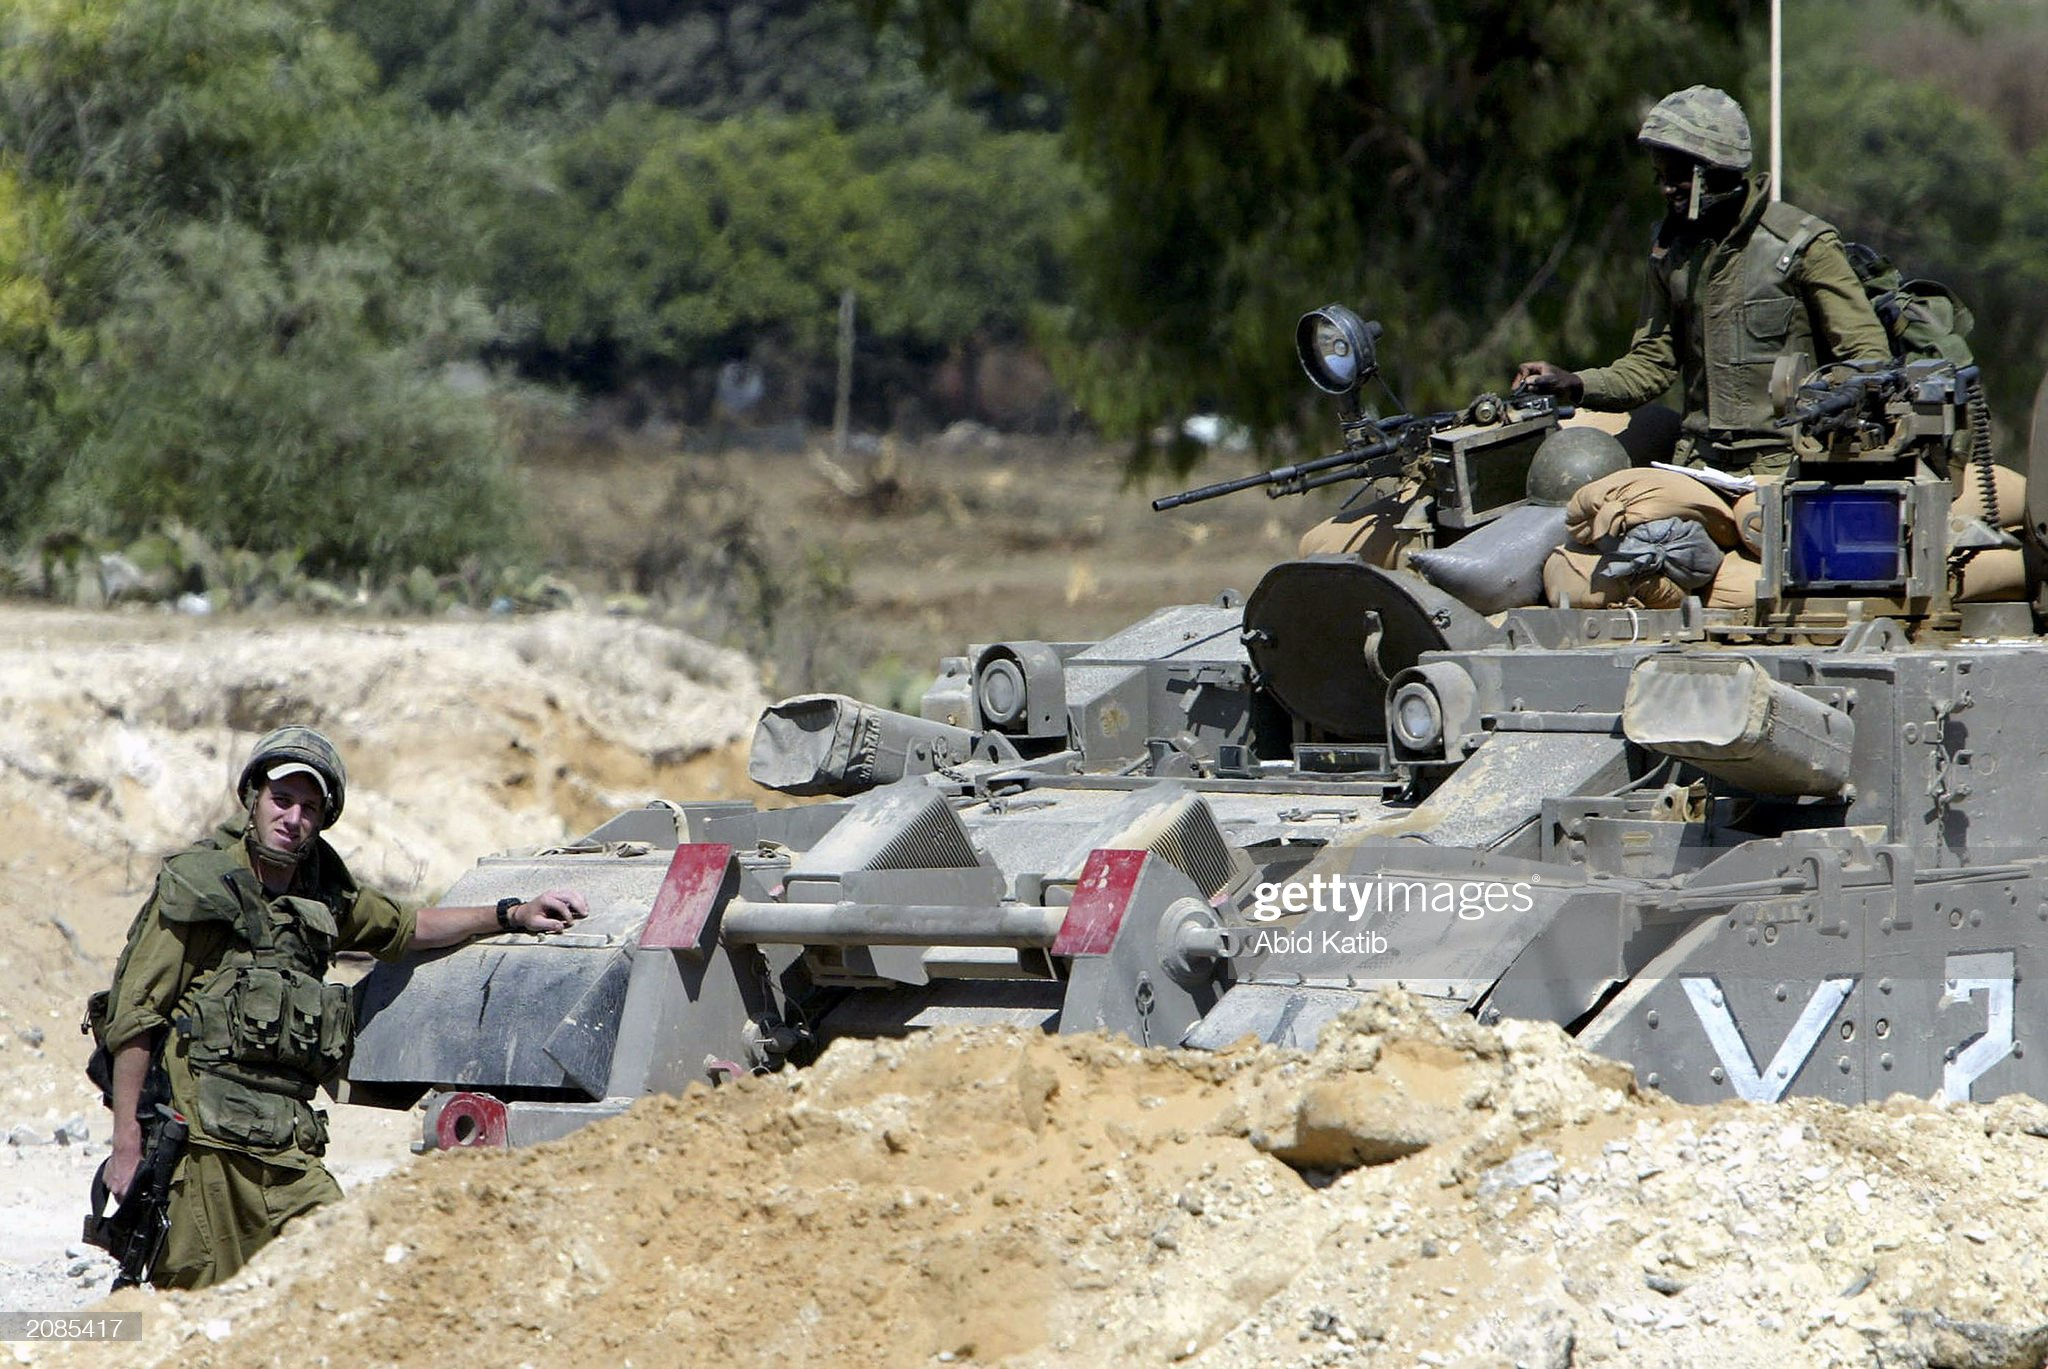 https://media.gettyimages.com/photos/two-israeli-soldiers-rest-near-their-tank-june-16-2003-at-the-to-the-picture-id2085417?s=2048x2048